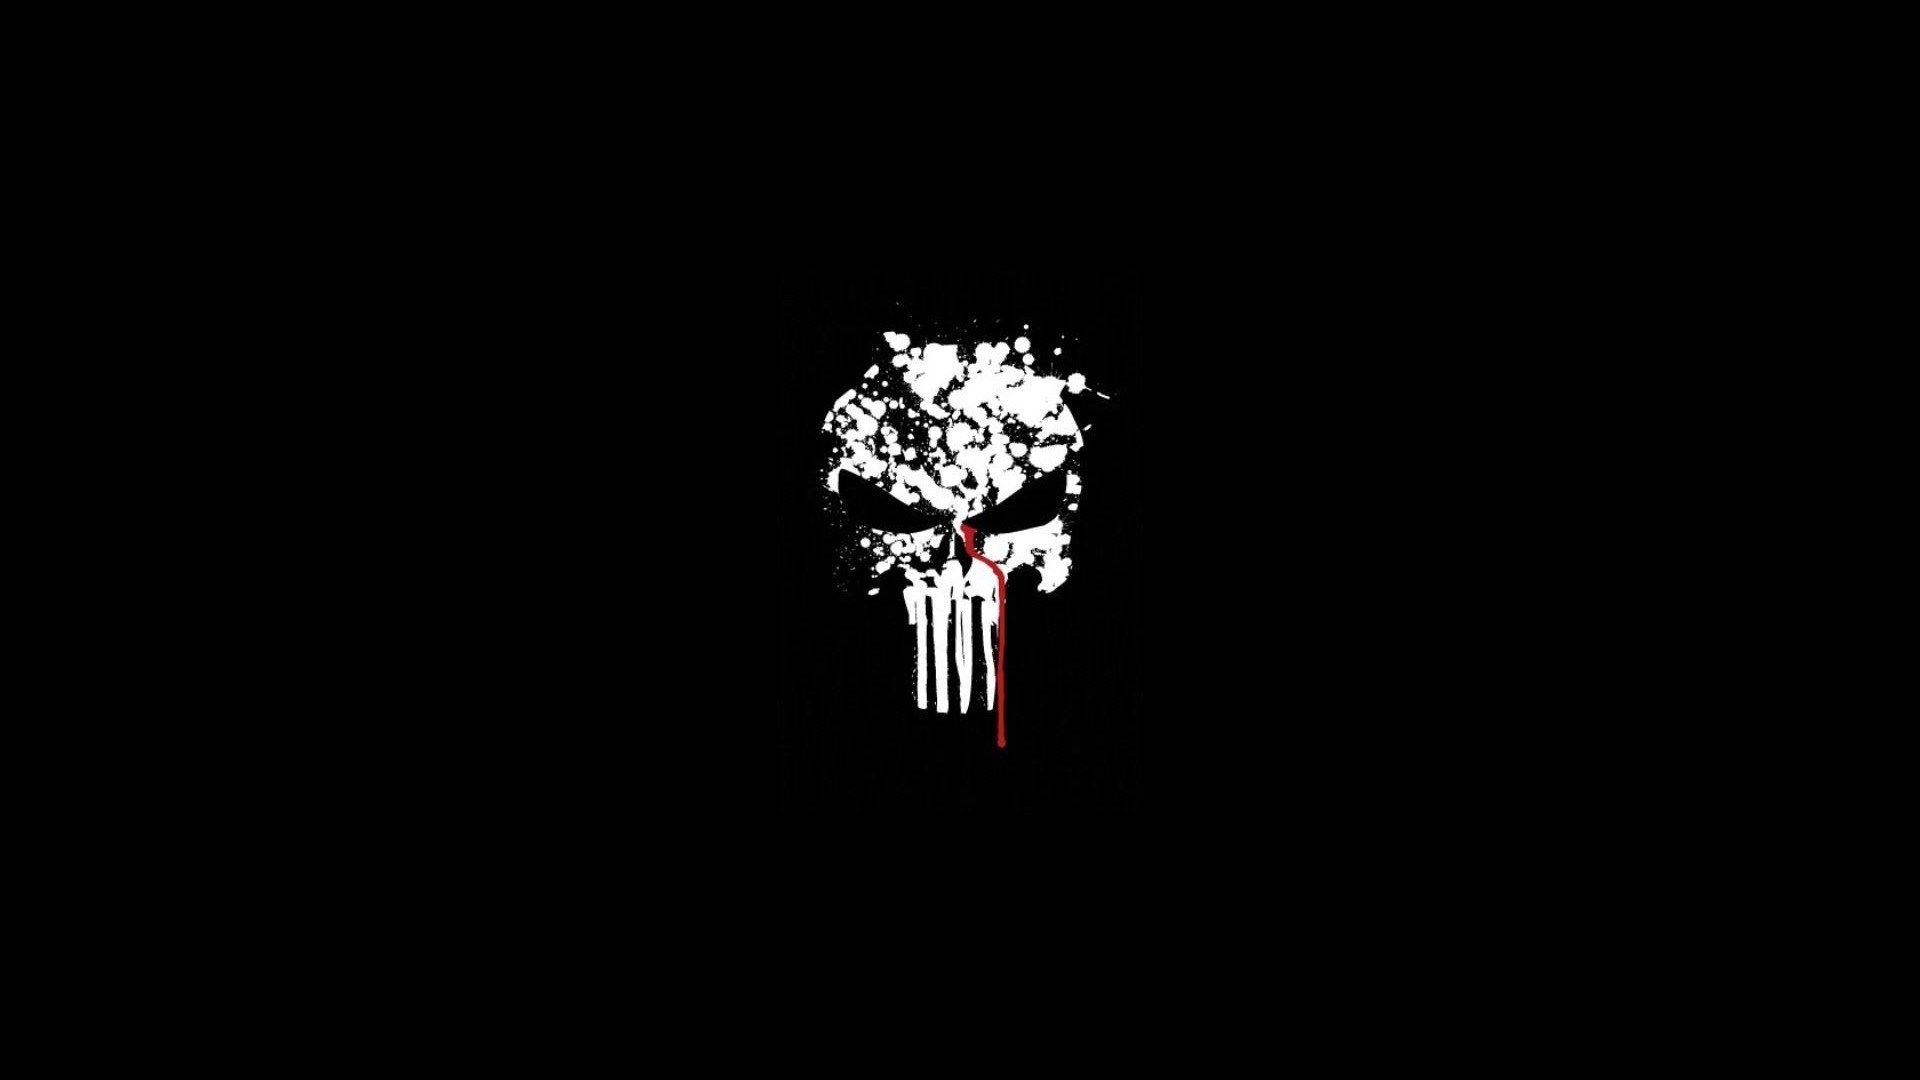 1920x1080 punisher time pictures for background JPG 65 kB